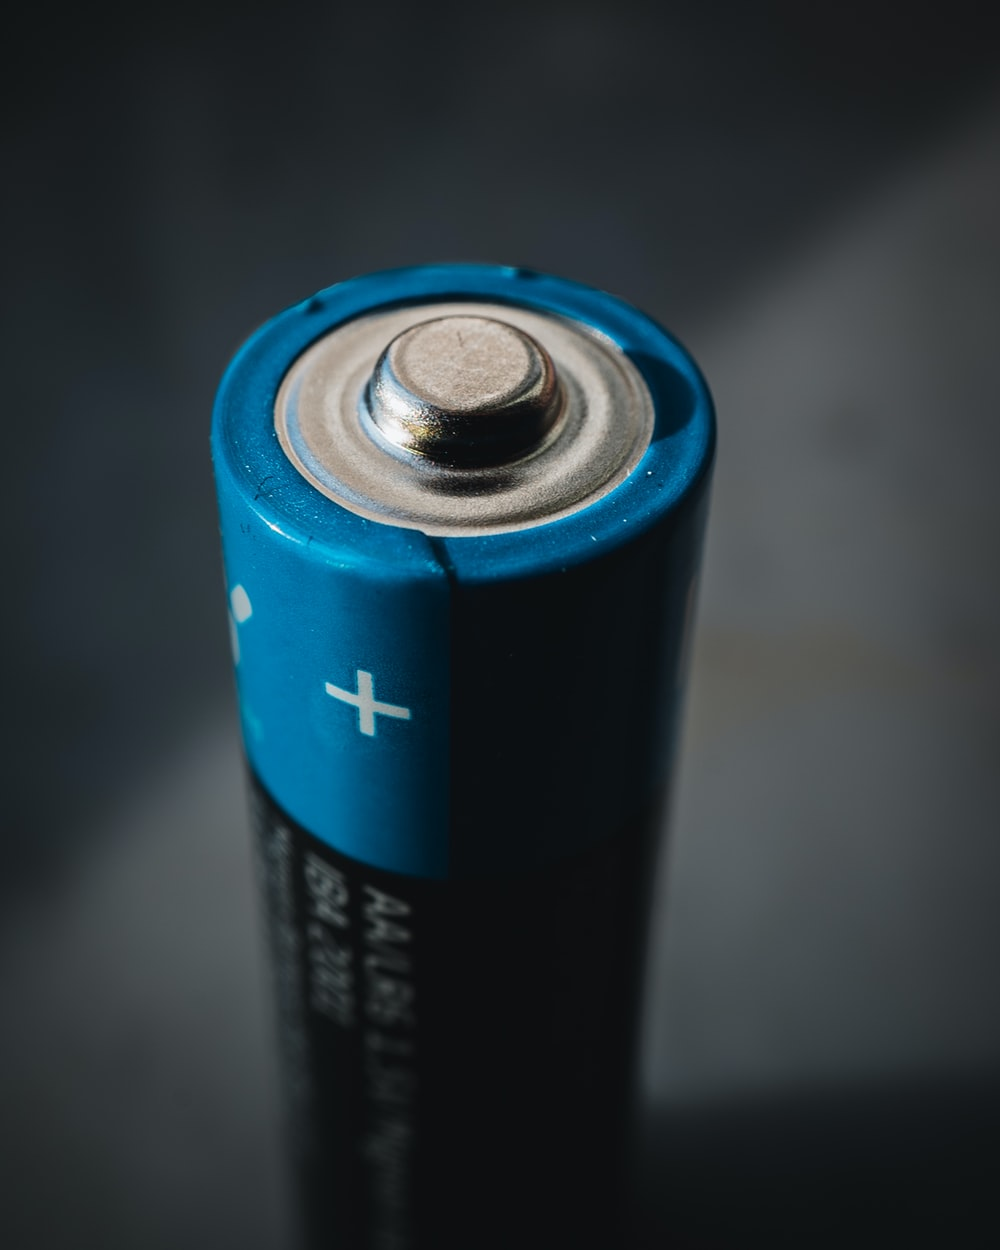 blue and black can on black surface